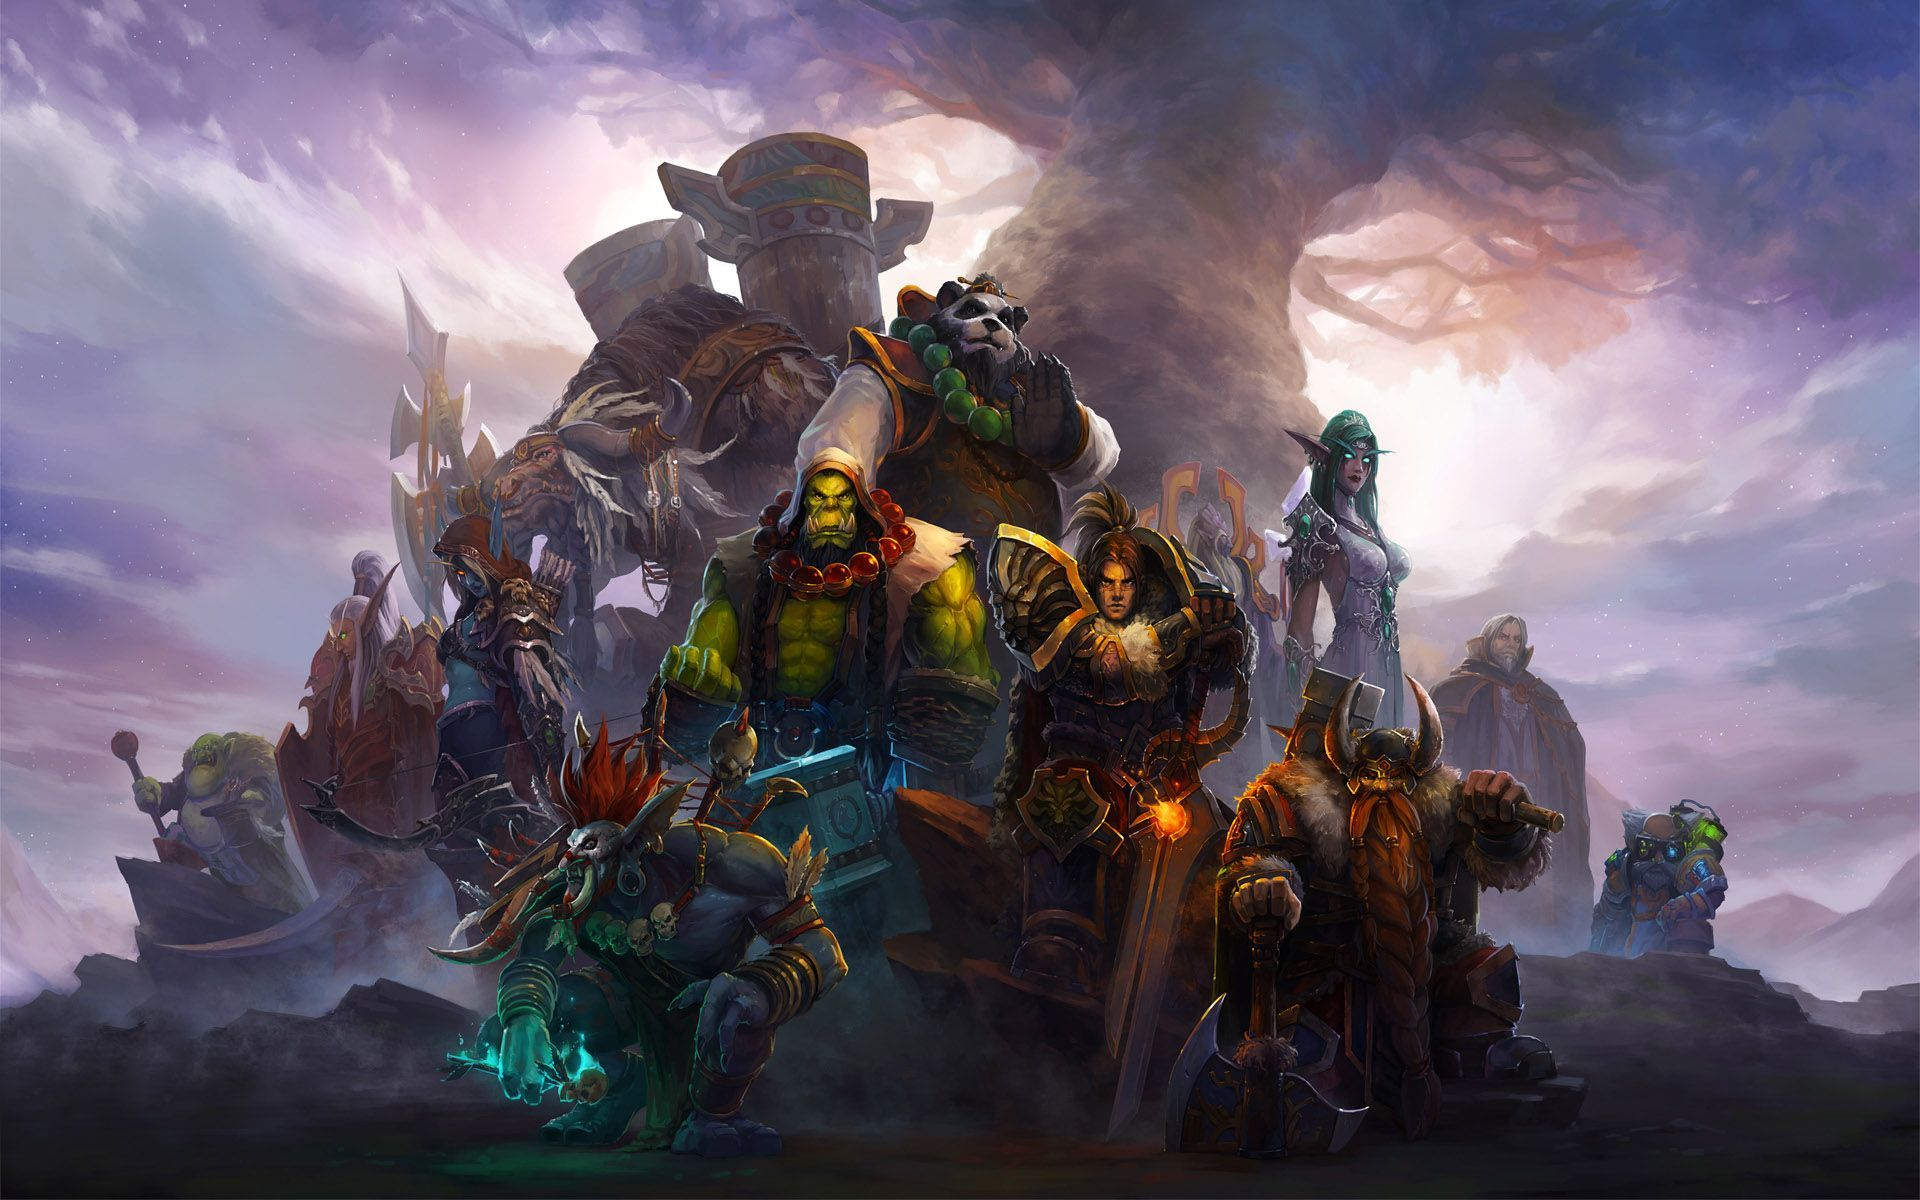 Call Of Duty Black Ops Wallpaper Warcraft Wallpapers Pictures Images